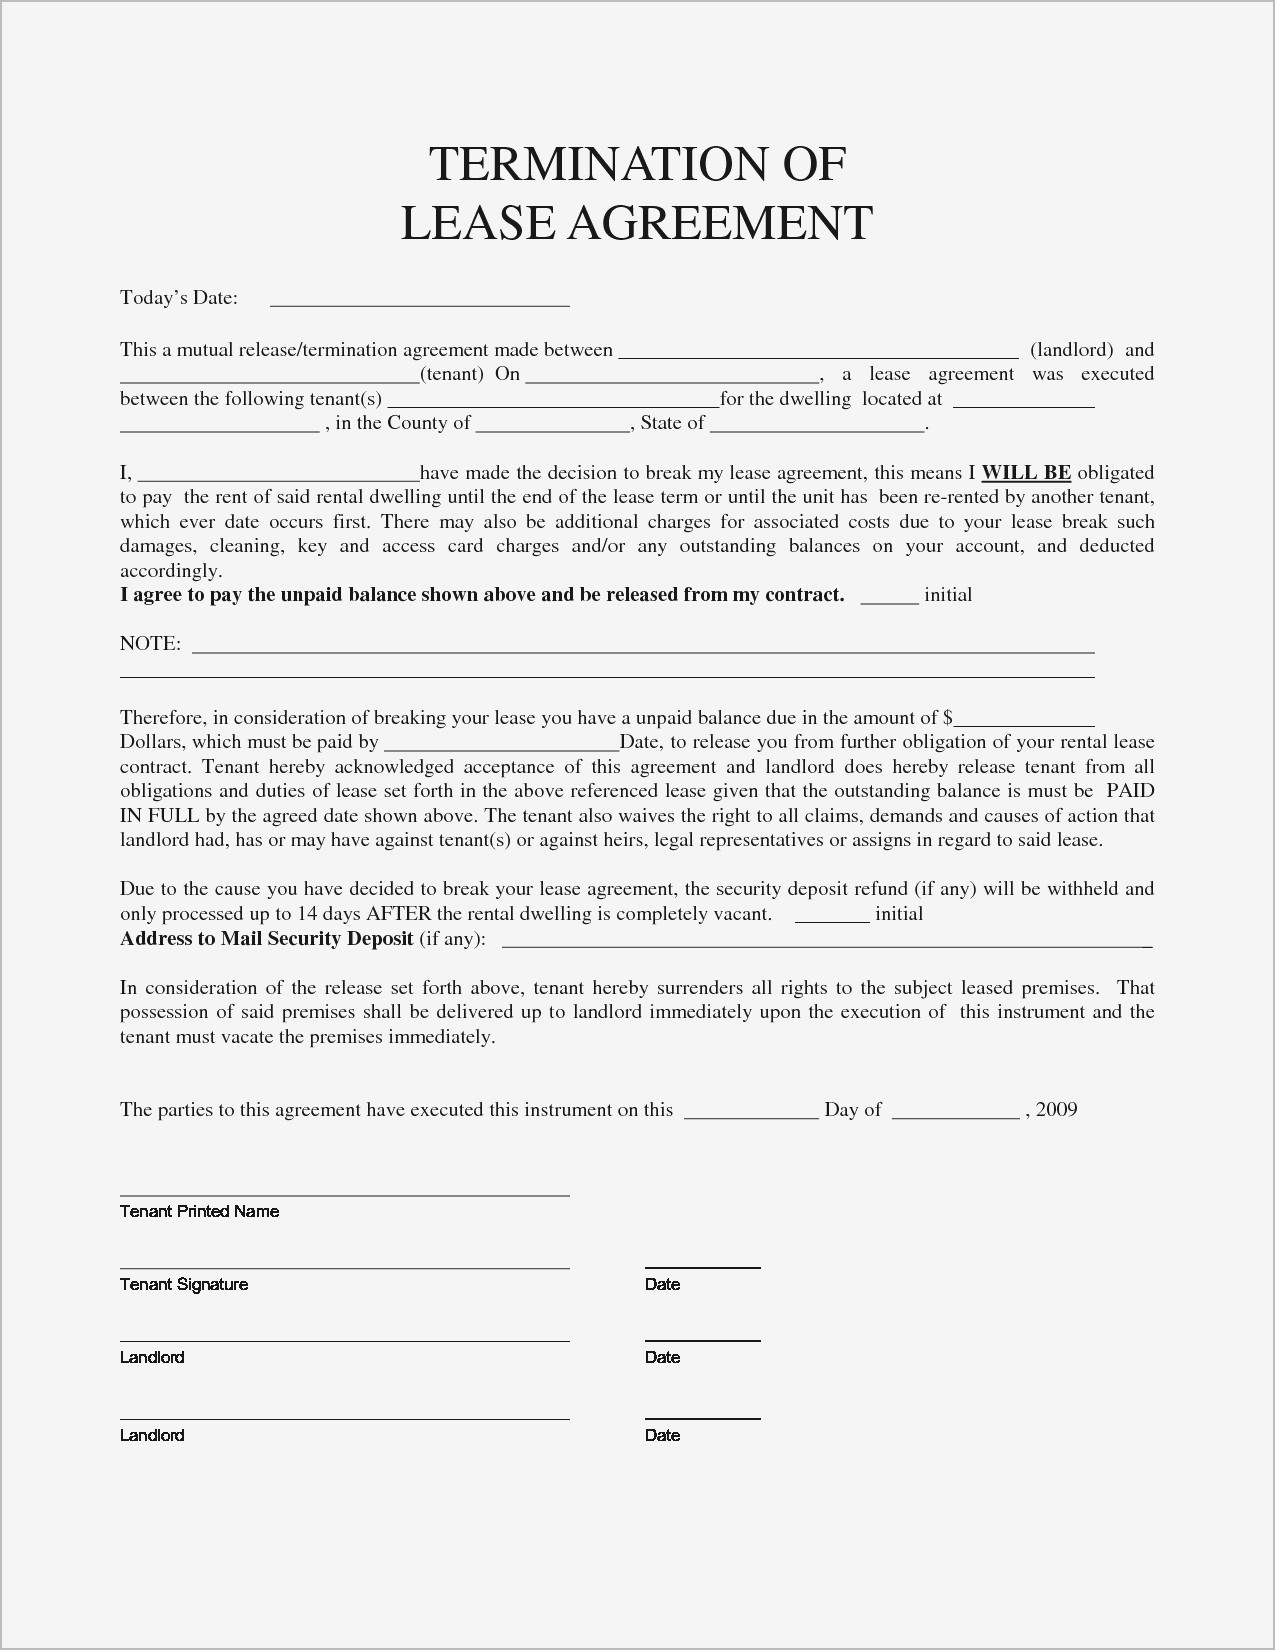 breaking lease agreement letter template Collection-Personal Property Rental Agreement Forms 9-l